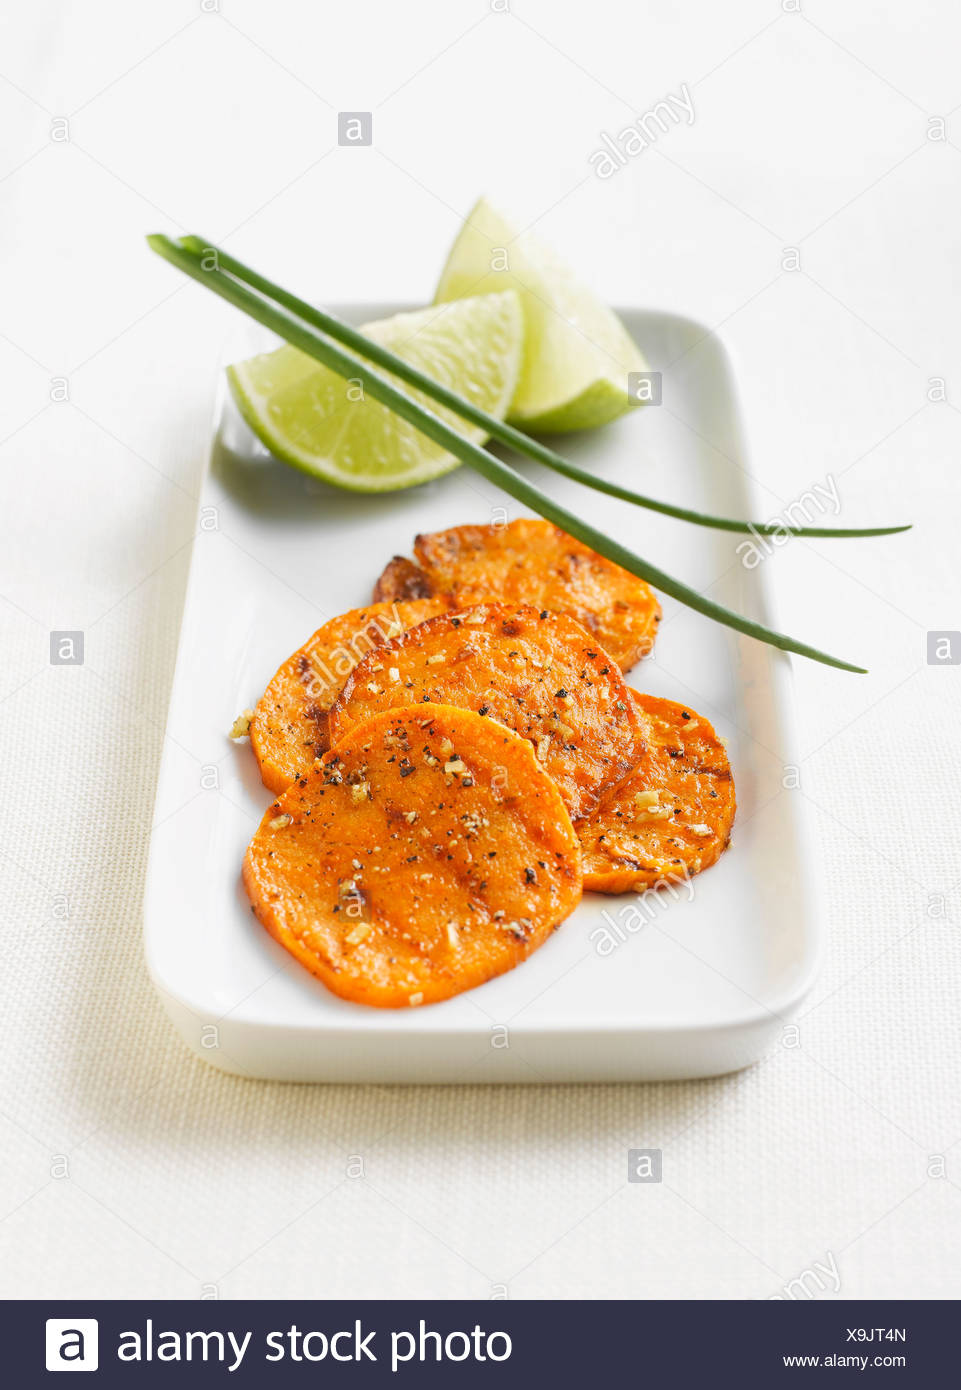 Grilled potato slices with lime slices and chive on platter - Stock Image